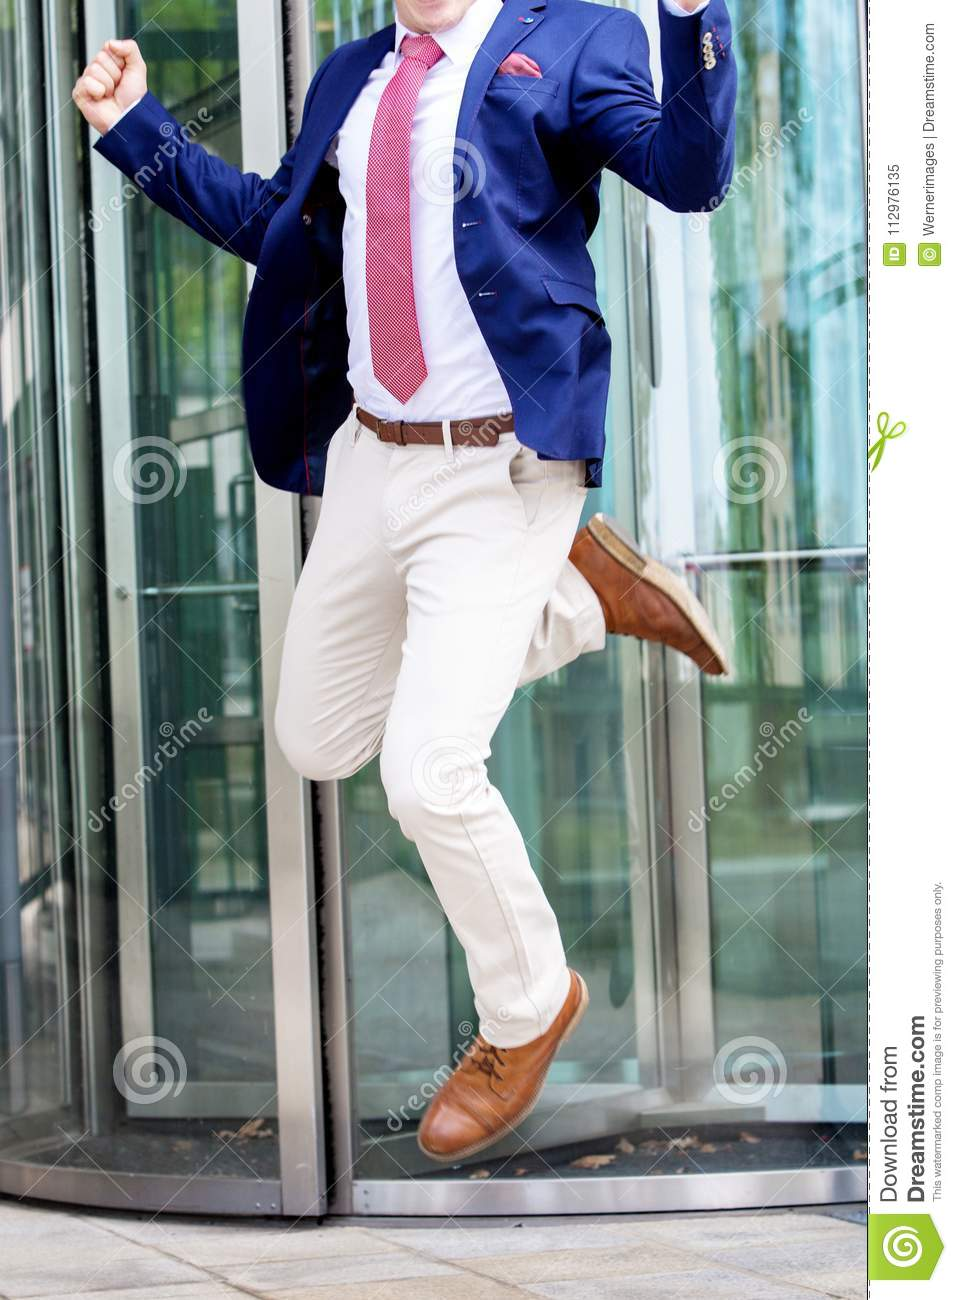 Headless businessman jumping in front of office building